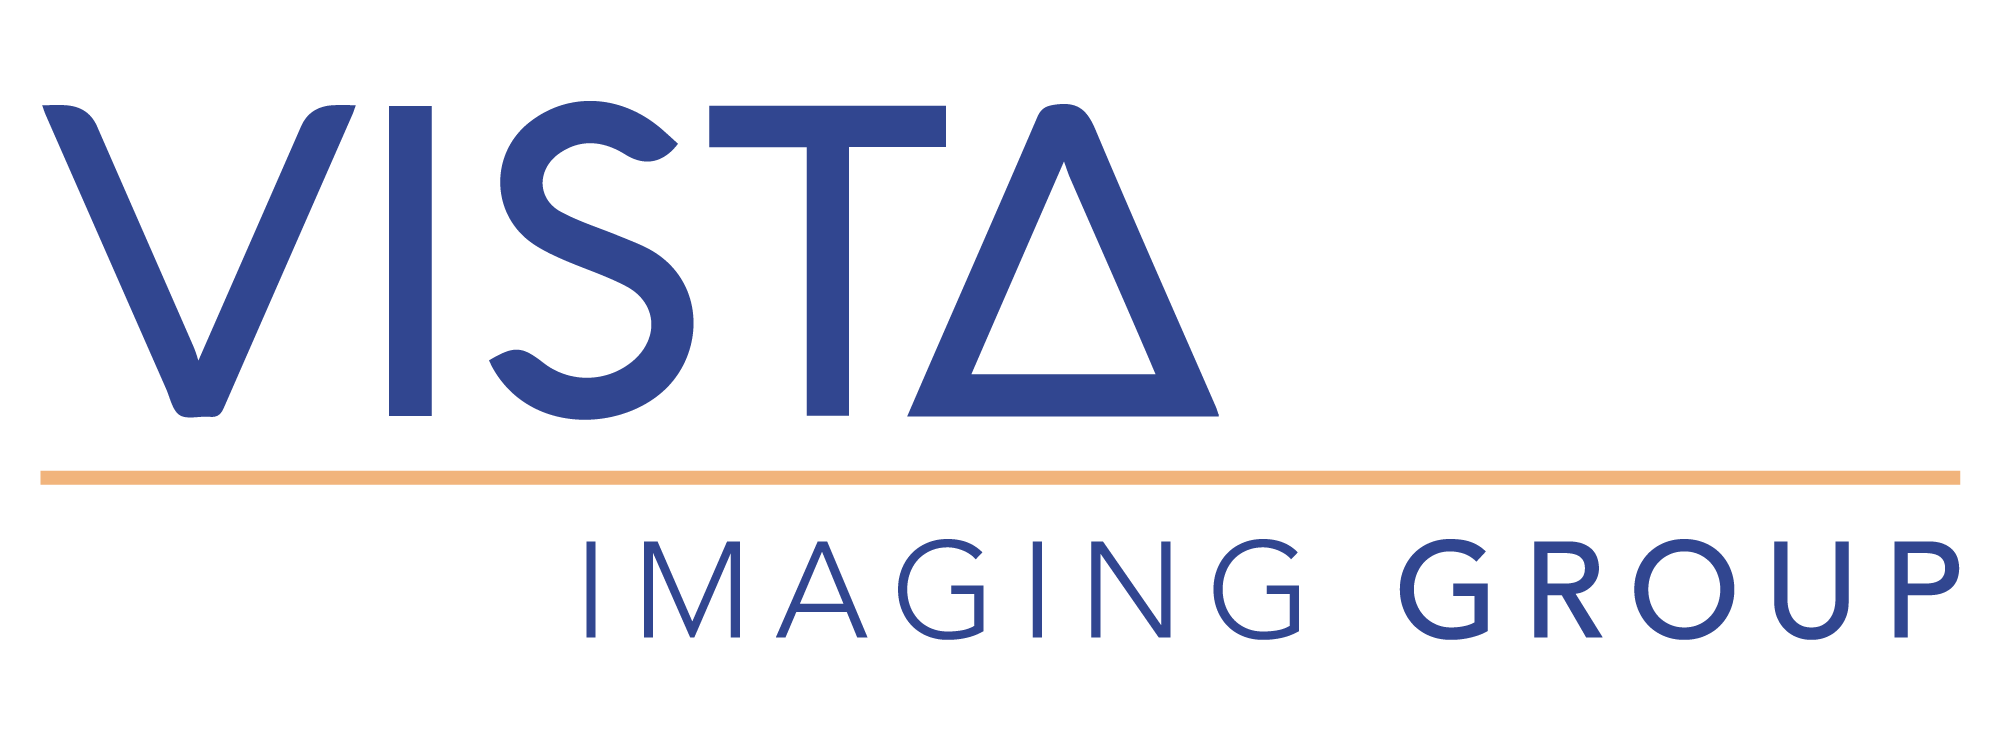 Vista Imaging Group